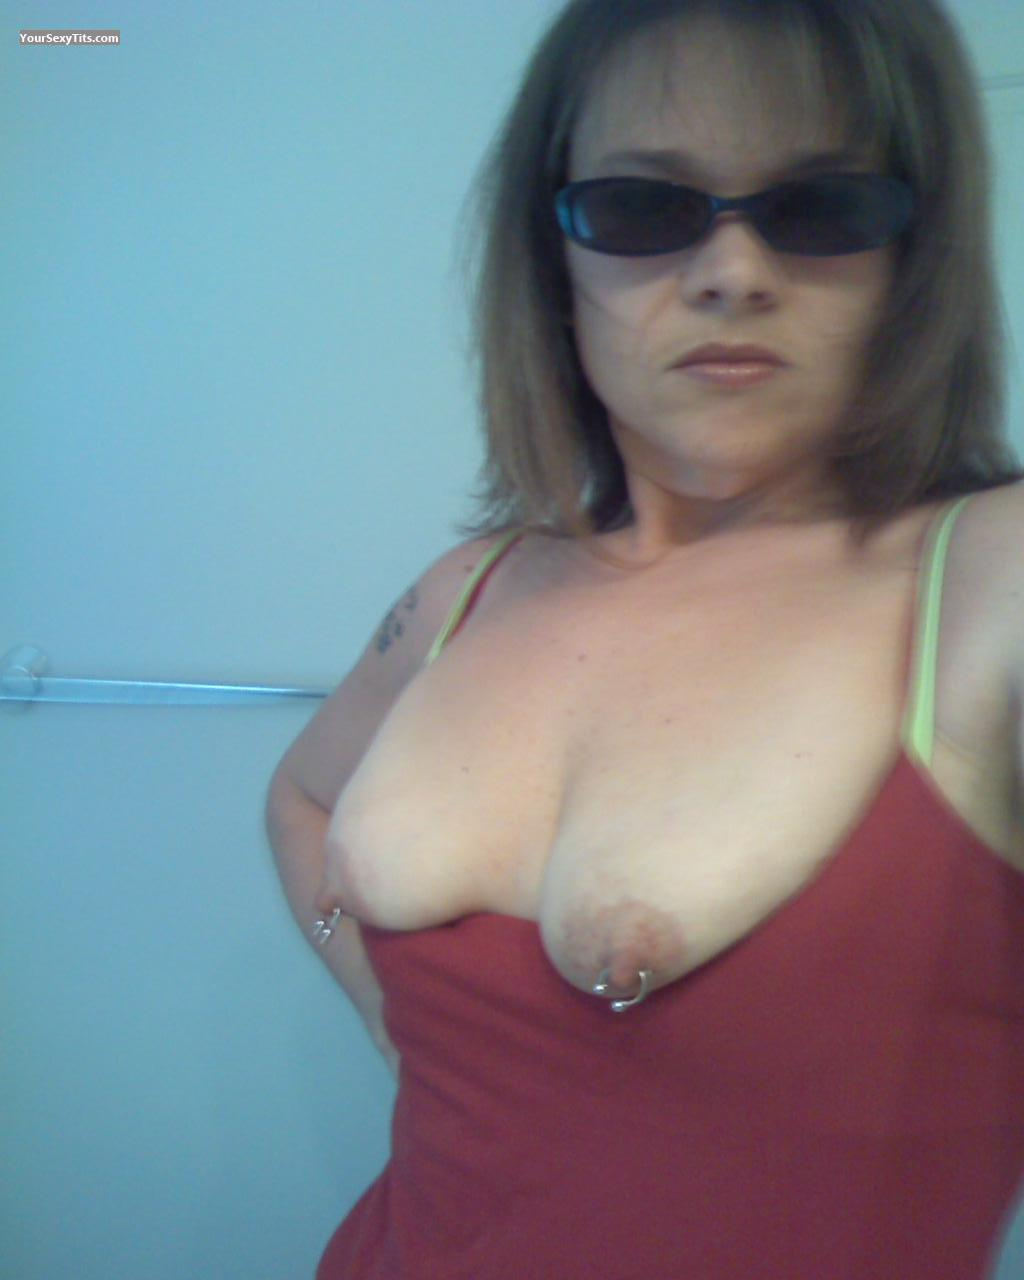 My Very small Tits Topless Selfie by LovelyJenny